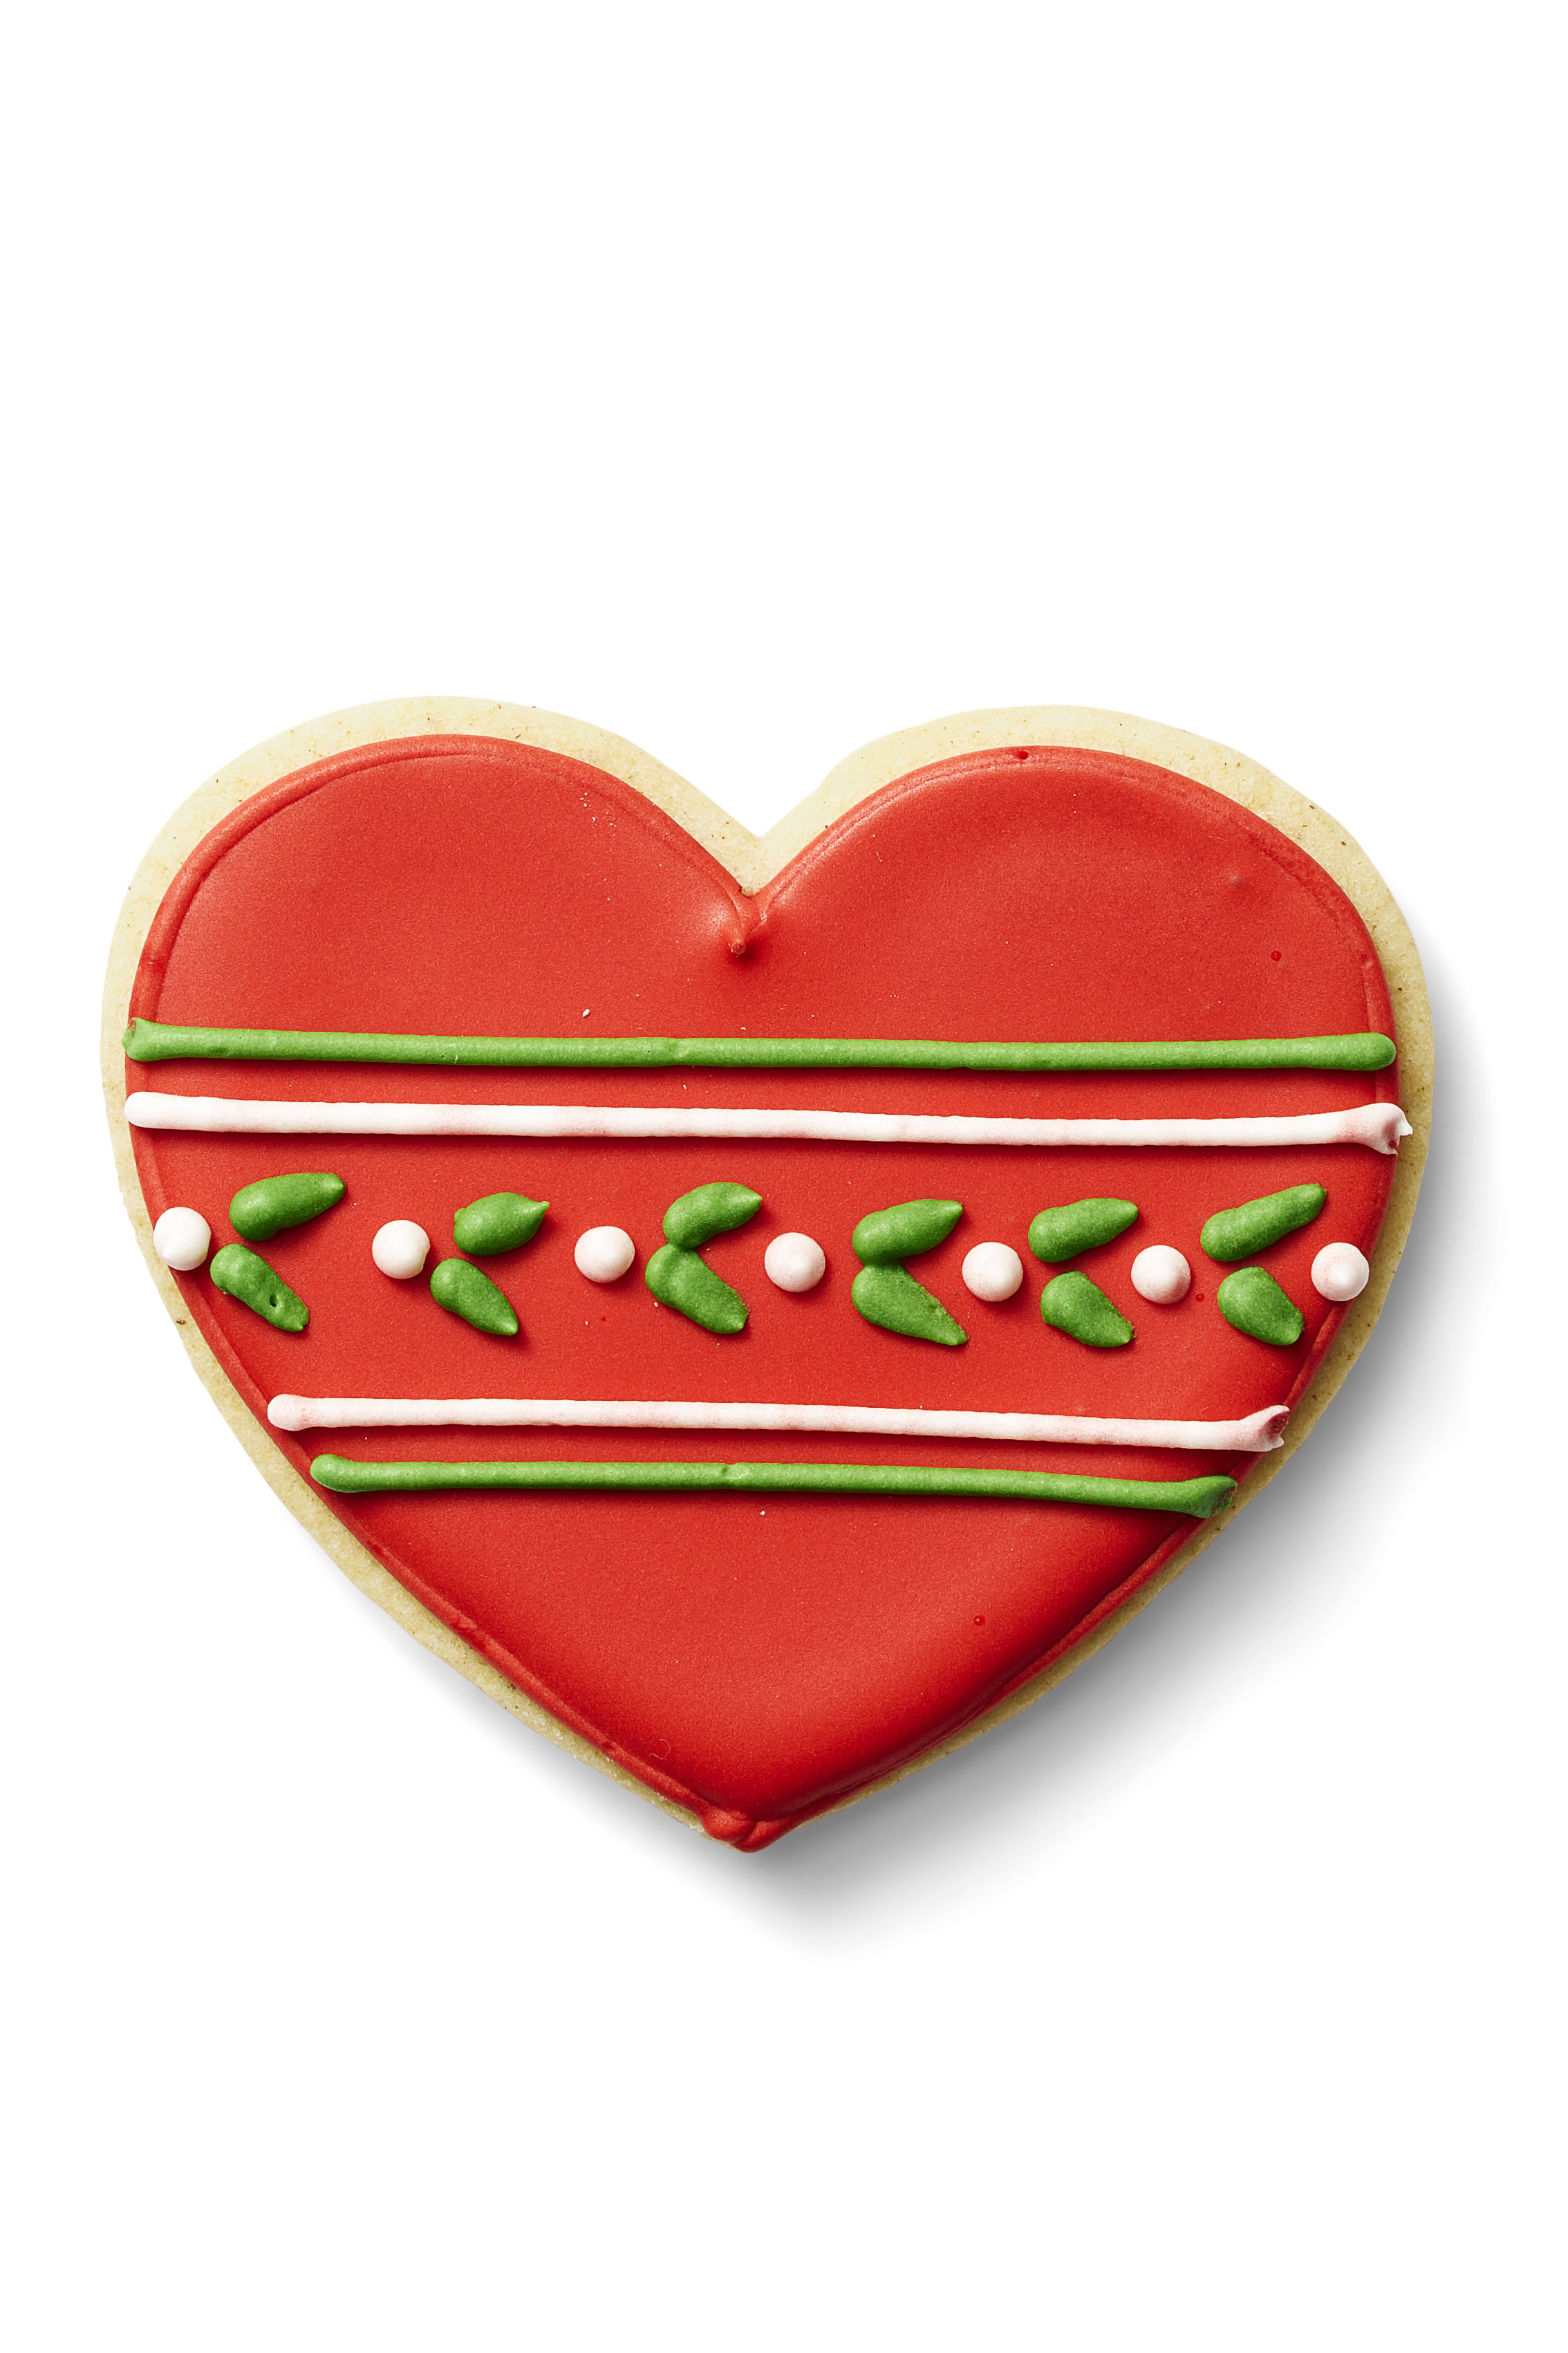 40 Christmas Cookie Decorating Ideas - How to Decorate ...